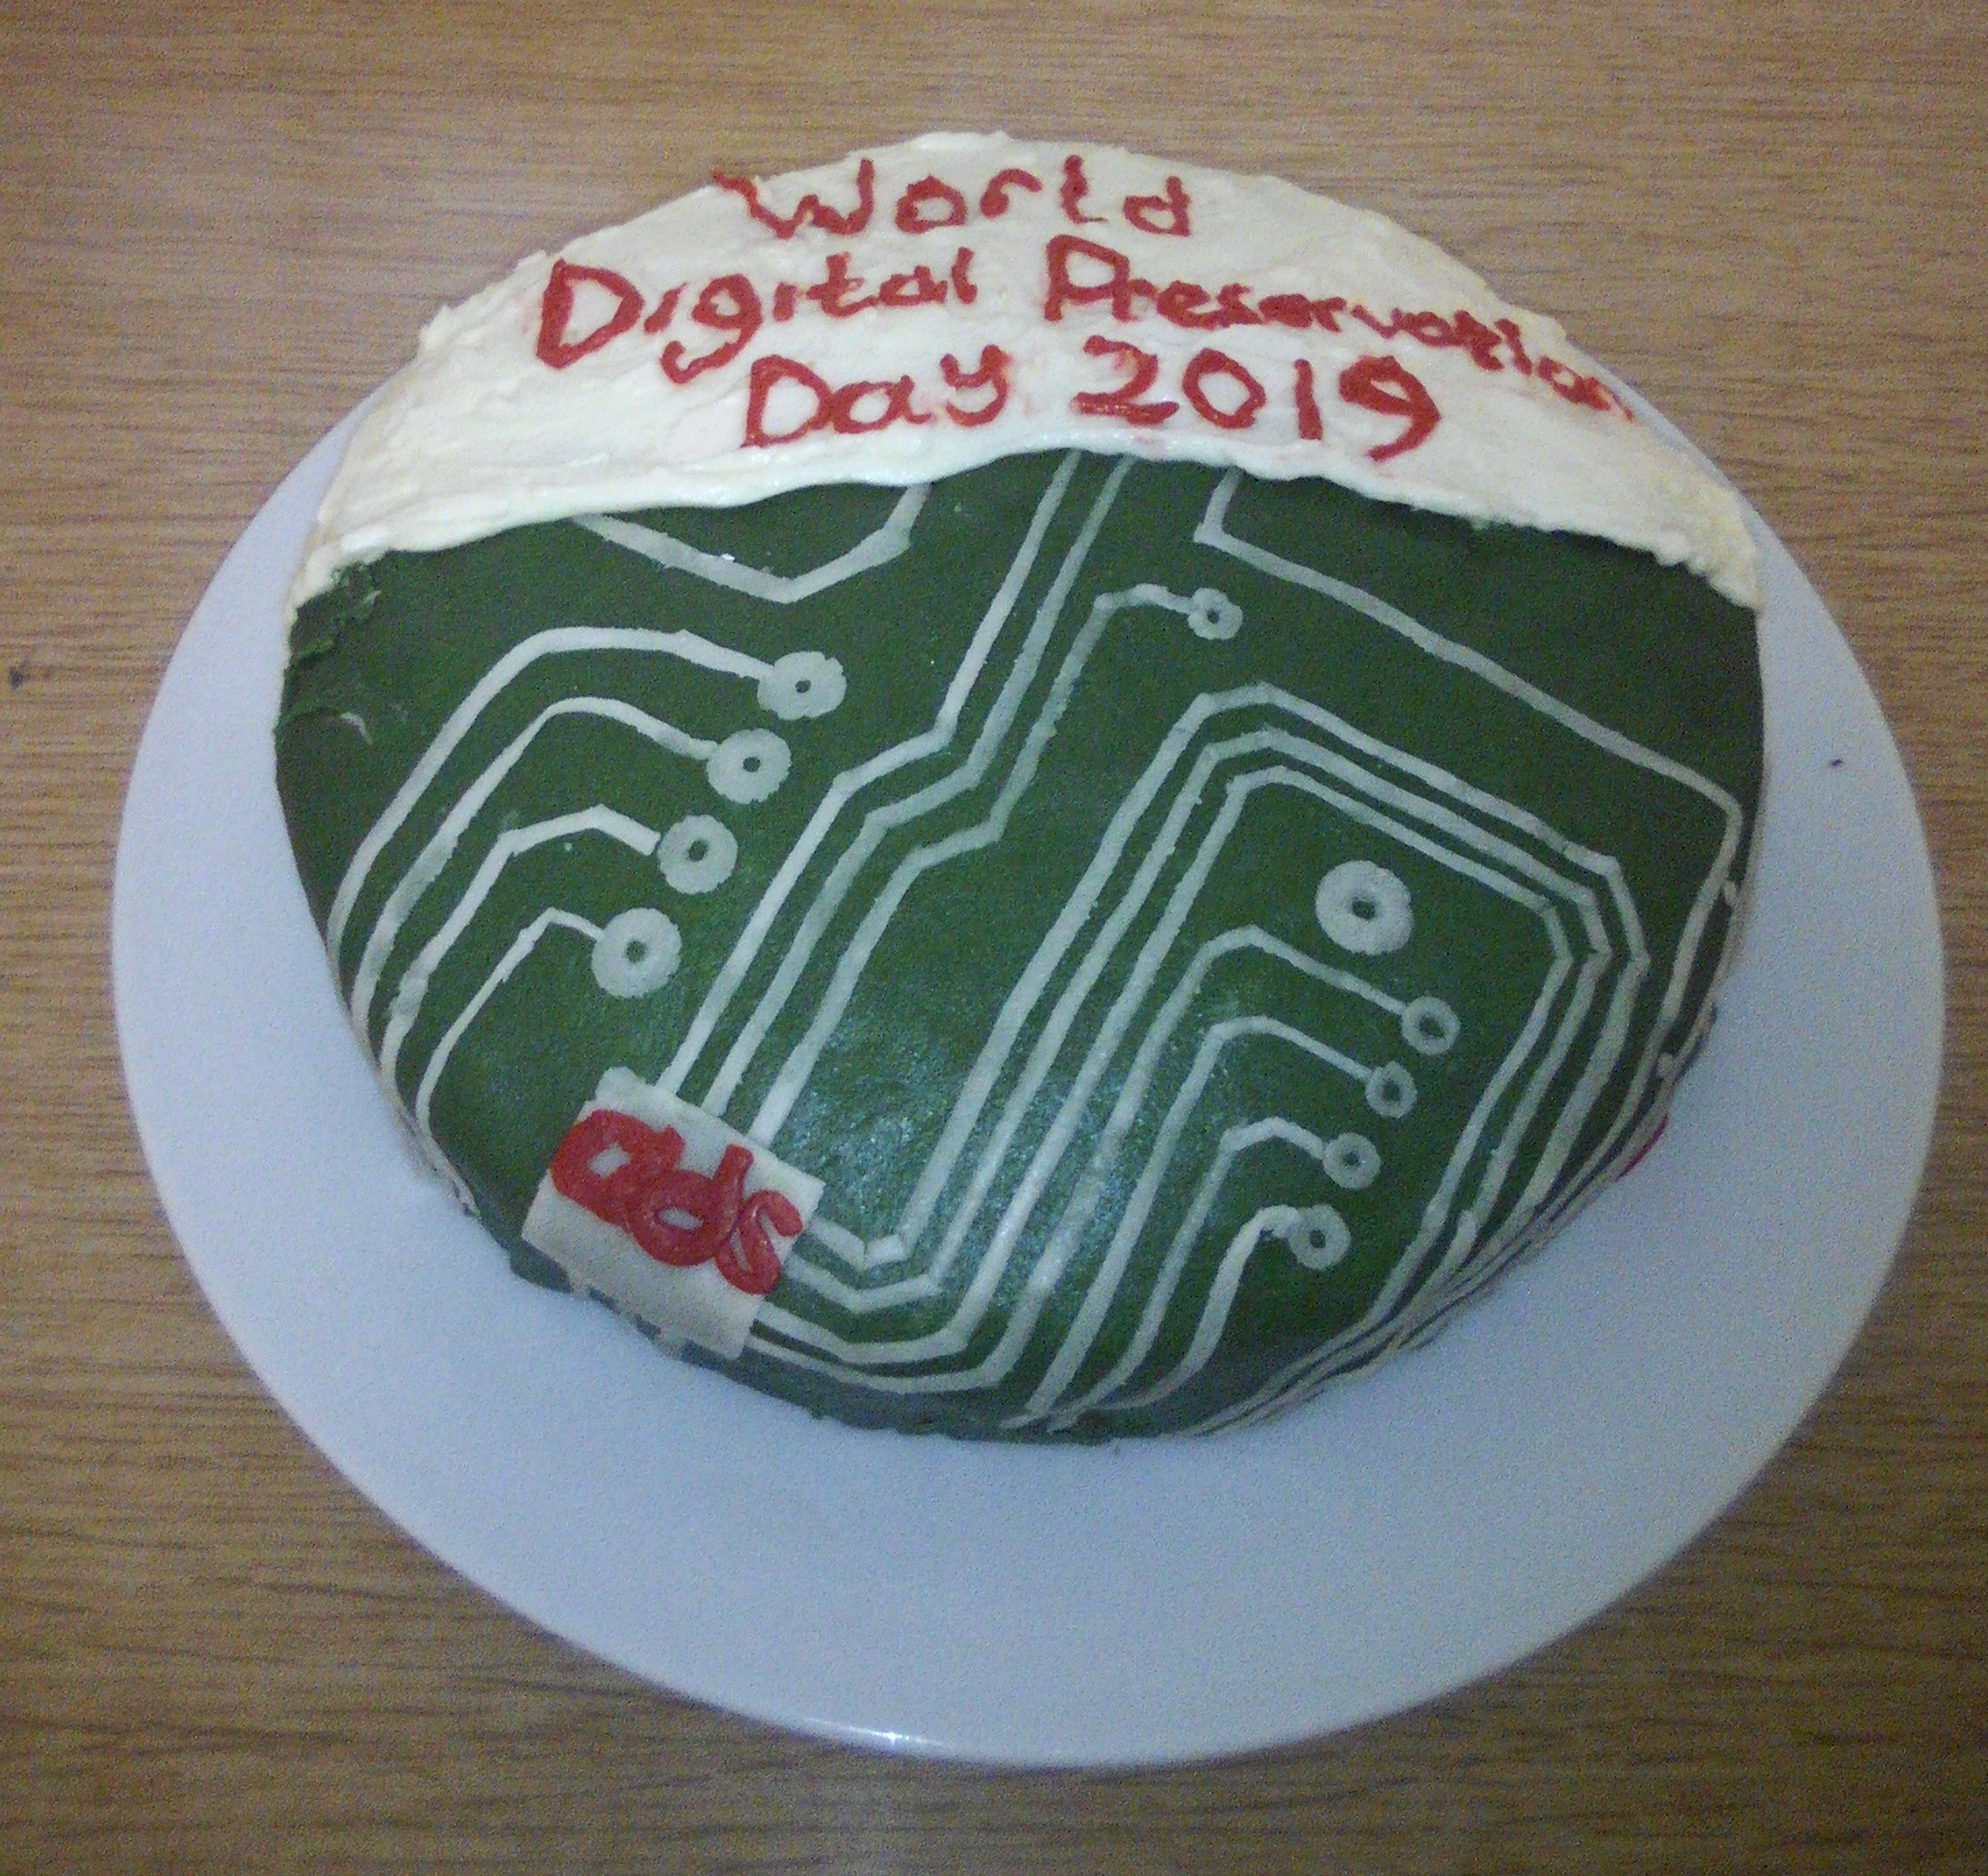 A cake with a green and white circuit board design and the text 'World Digital Preservation Day 2019'.